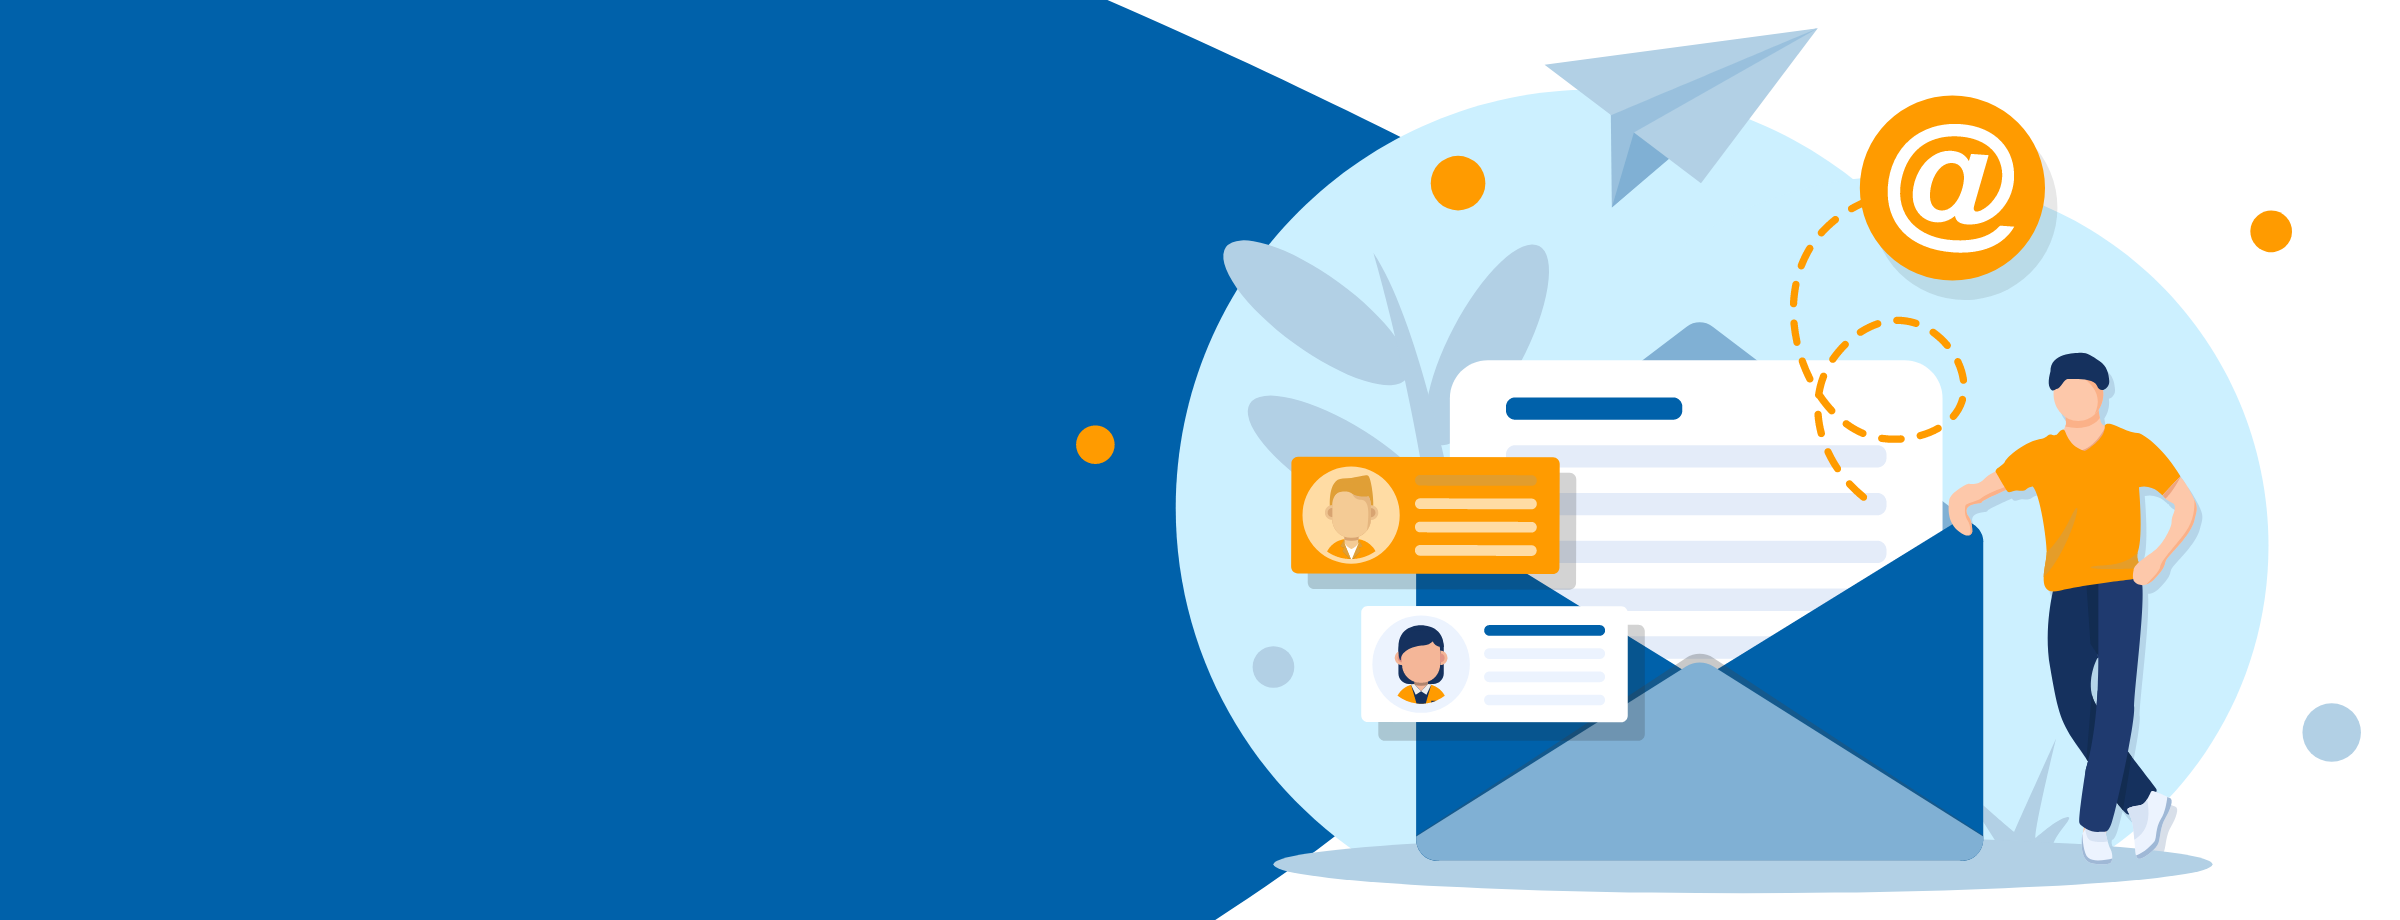 Drive business with professional email signatures from Letsignit